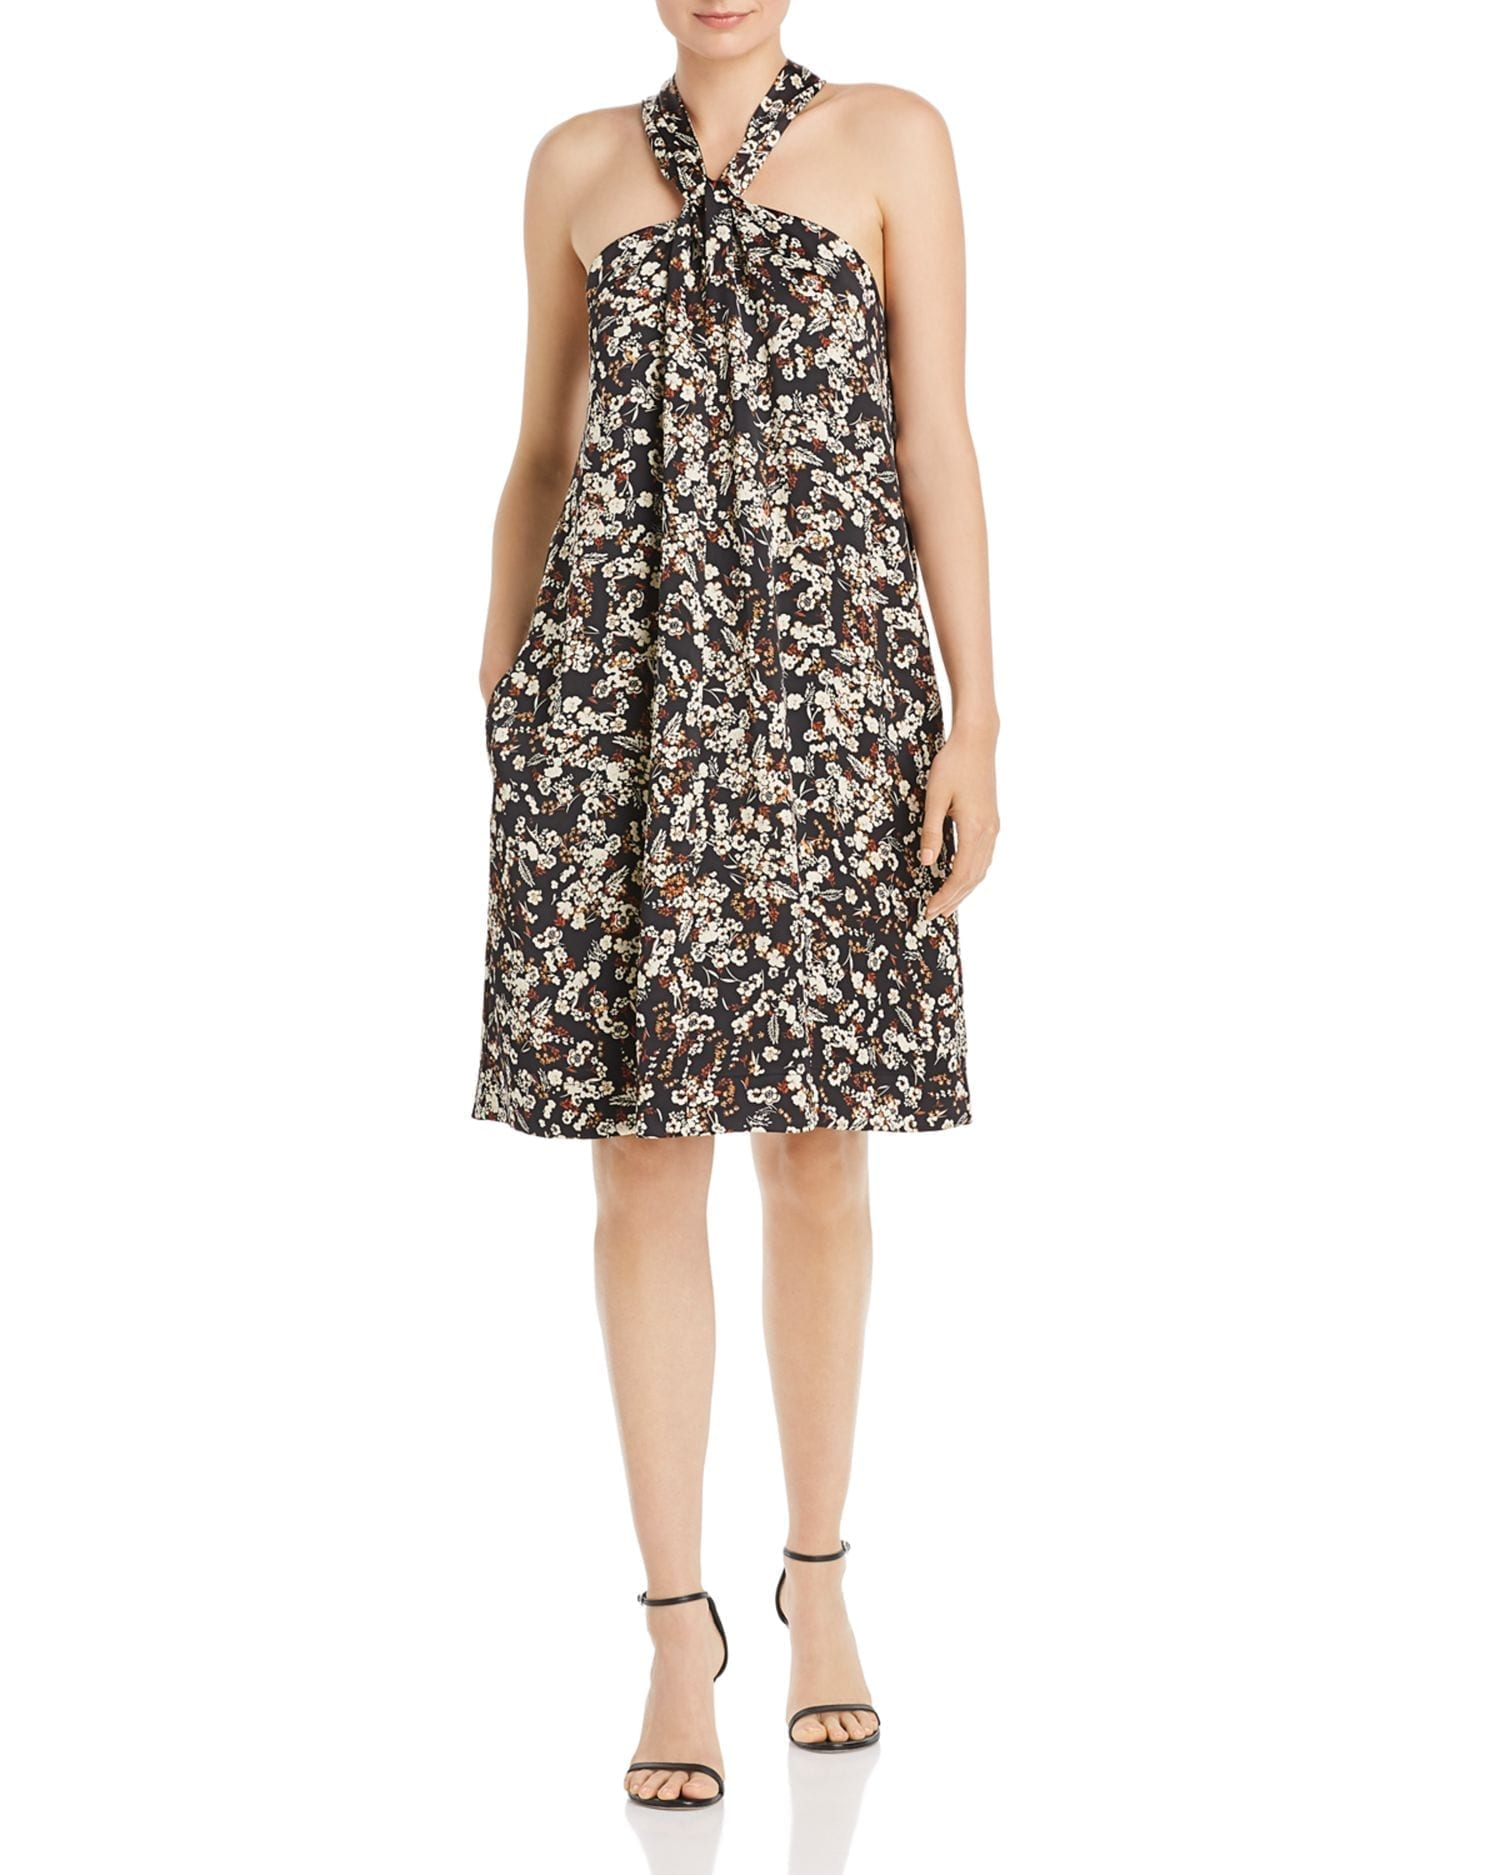 REBECCA MINKOFF Winnie Floral-Print Dress